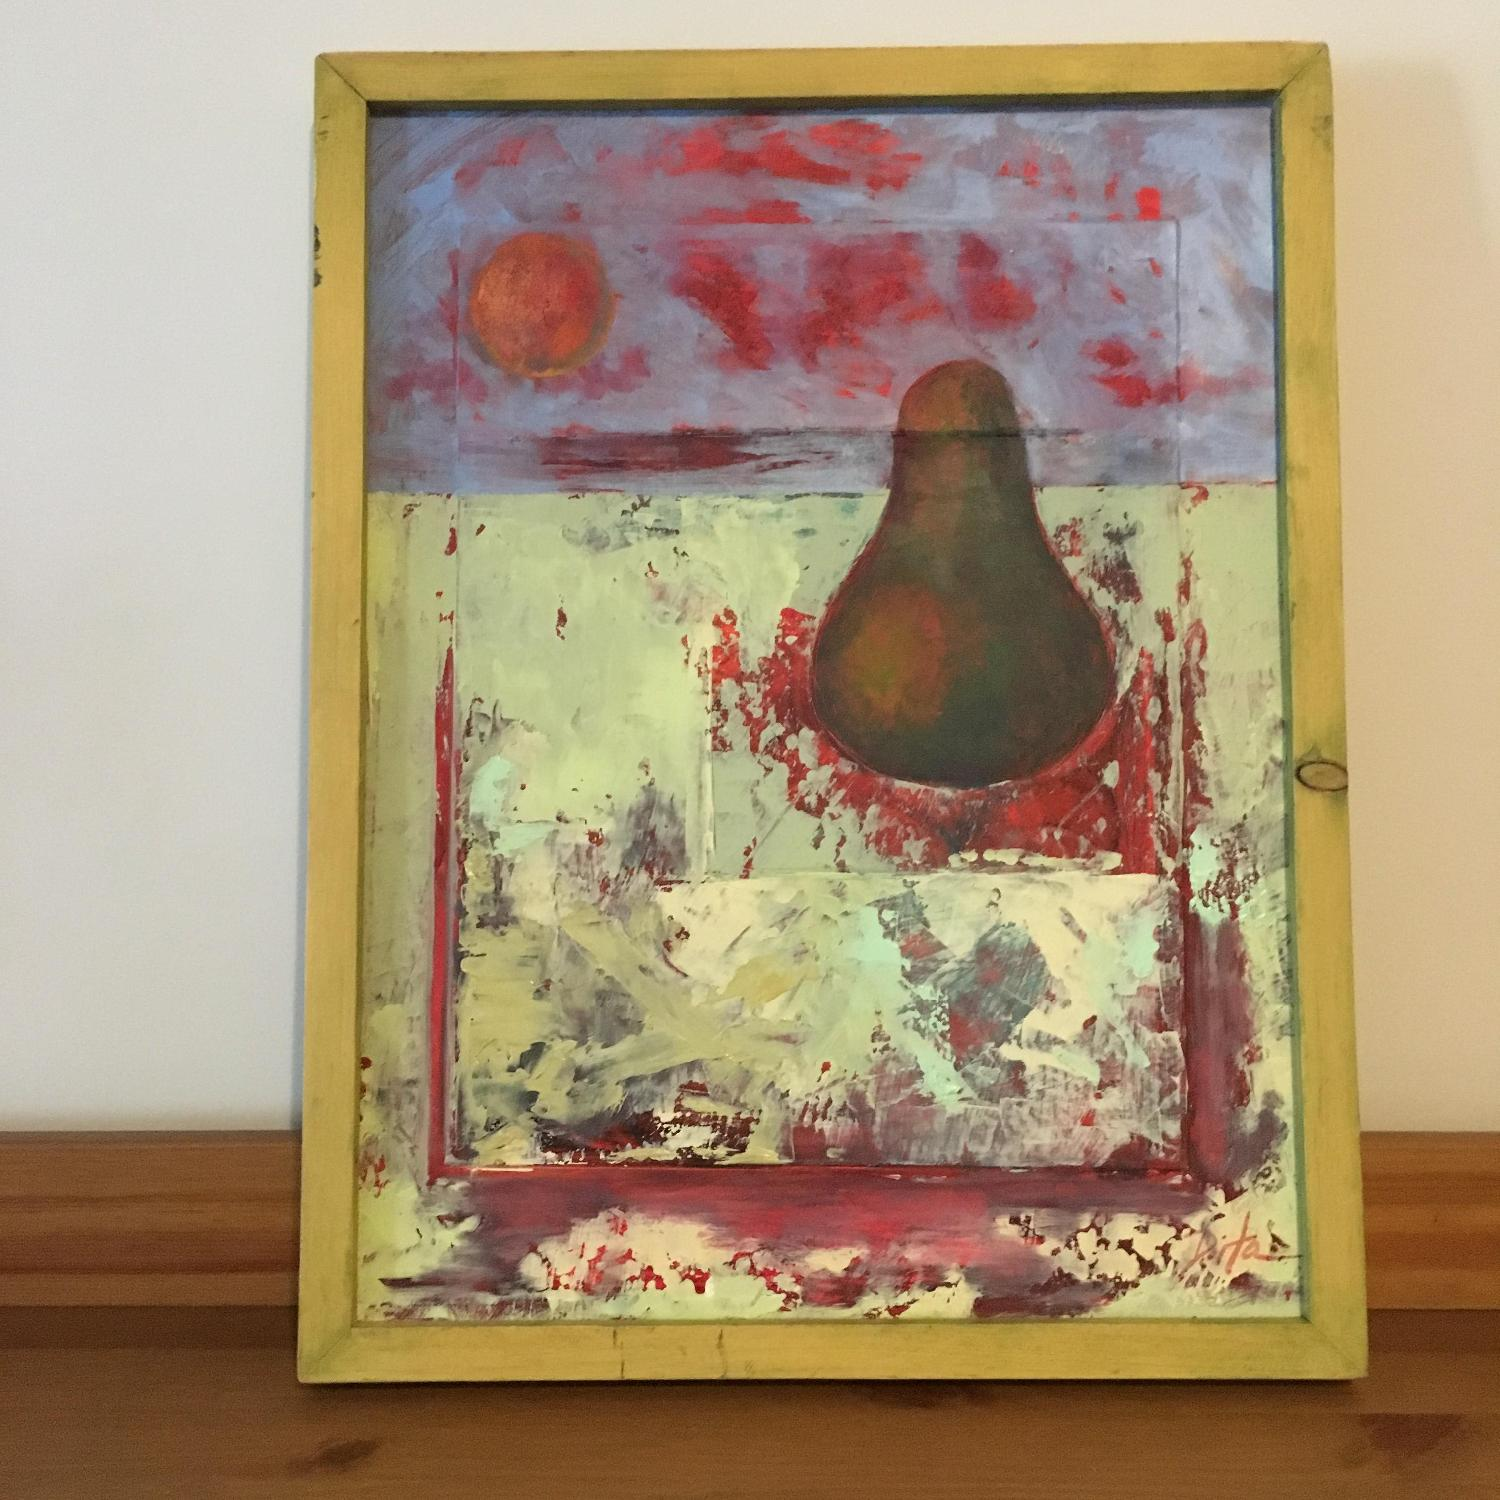 Framed Painting Pear on Wood - image-1